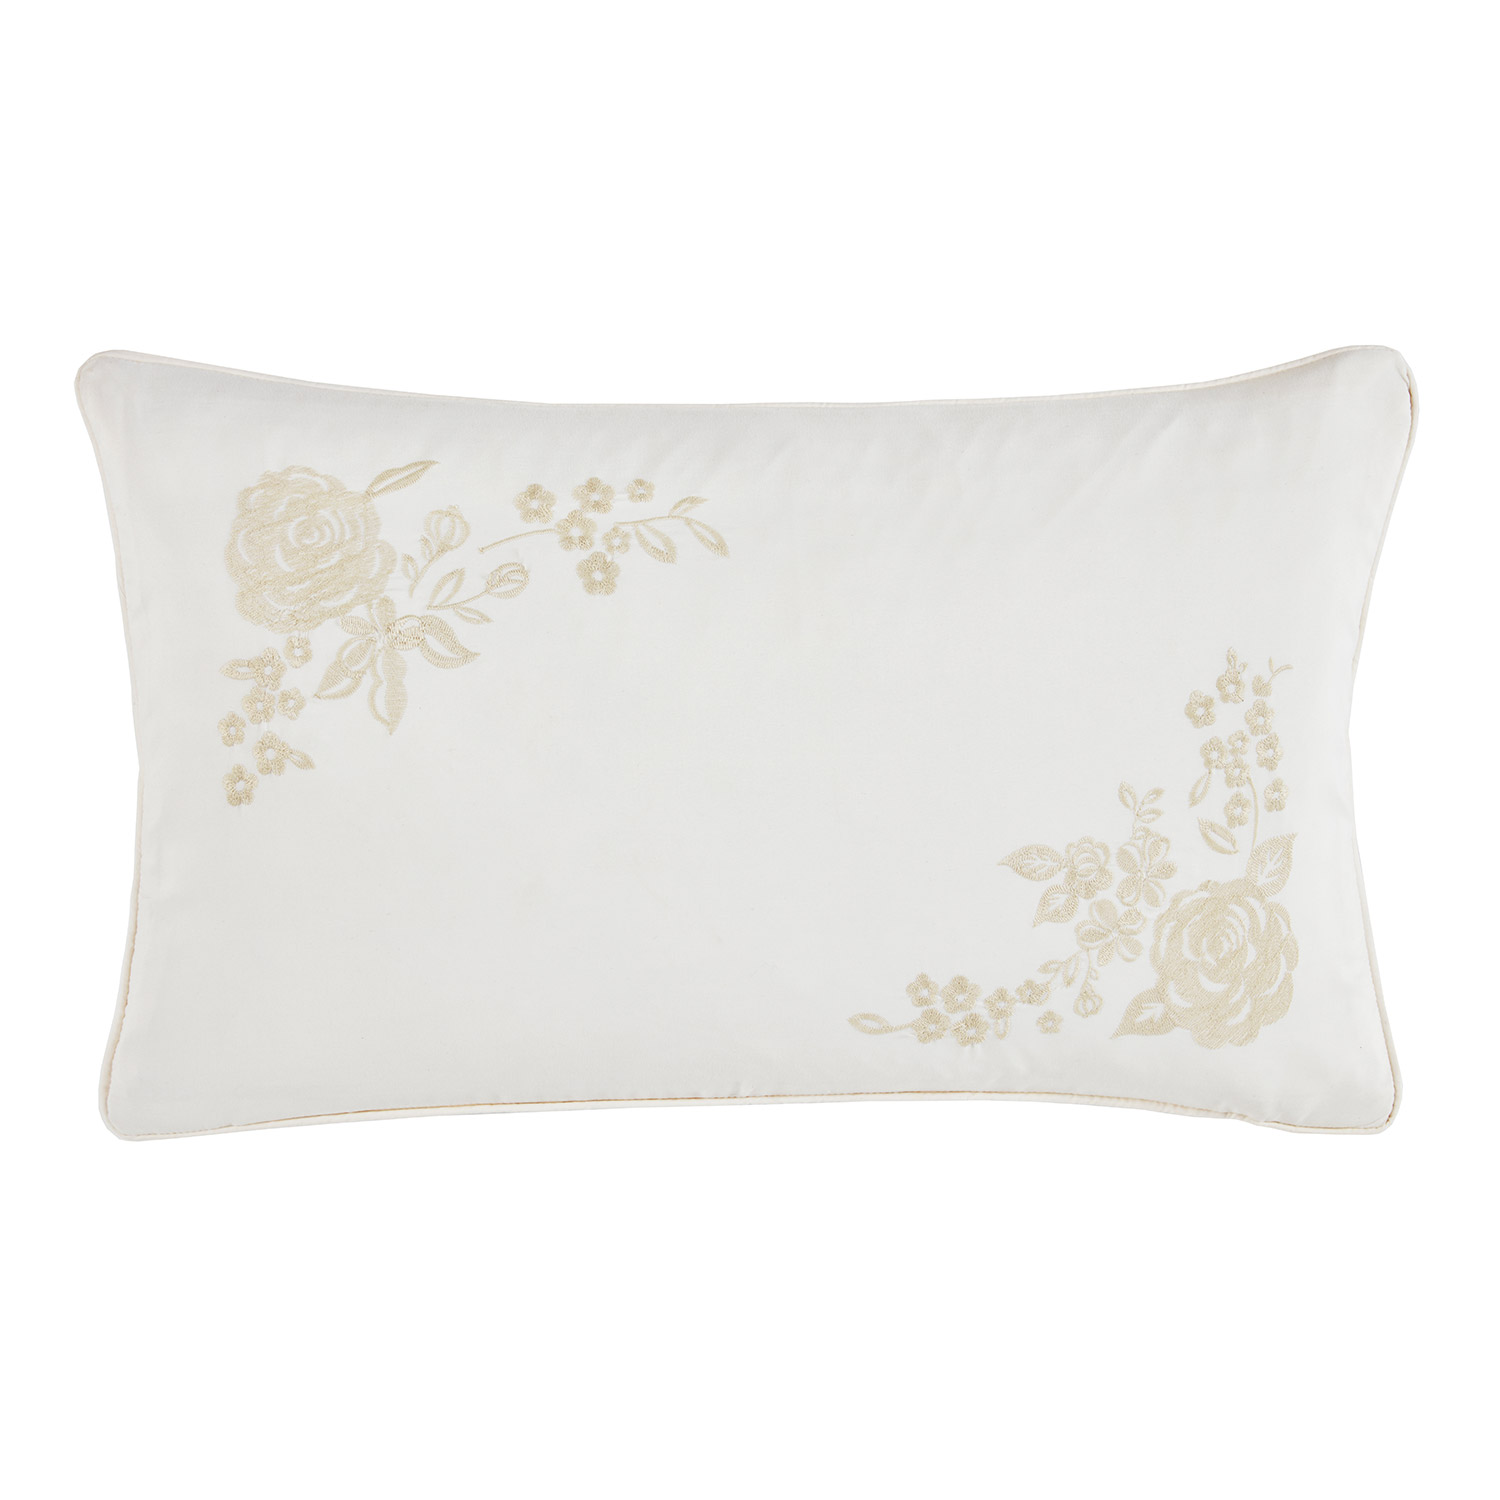 Bronte Natural Embroidered Filled Boudoir Cushion